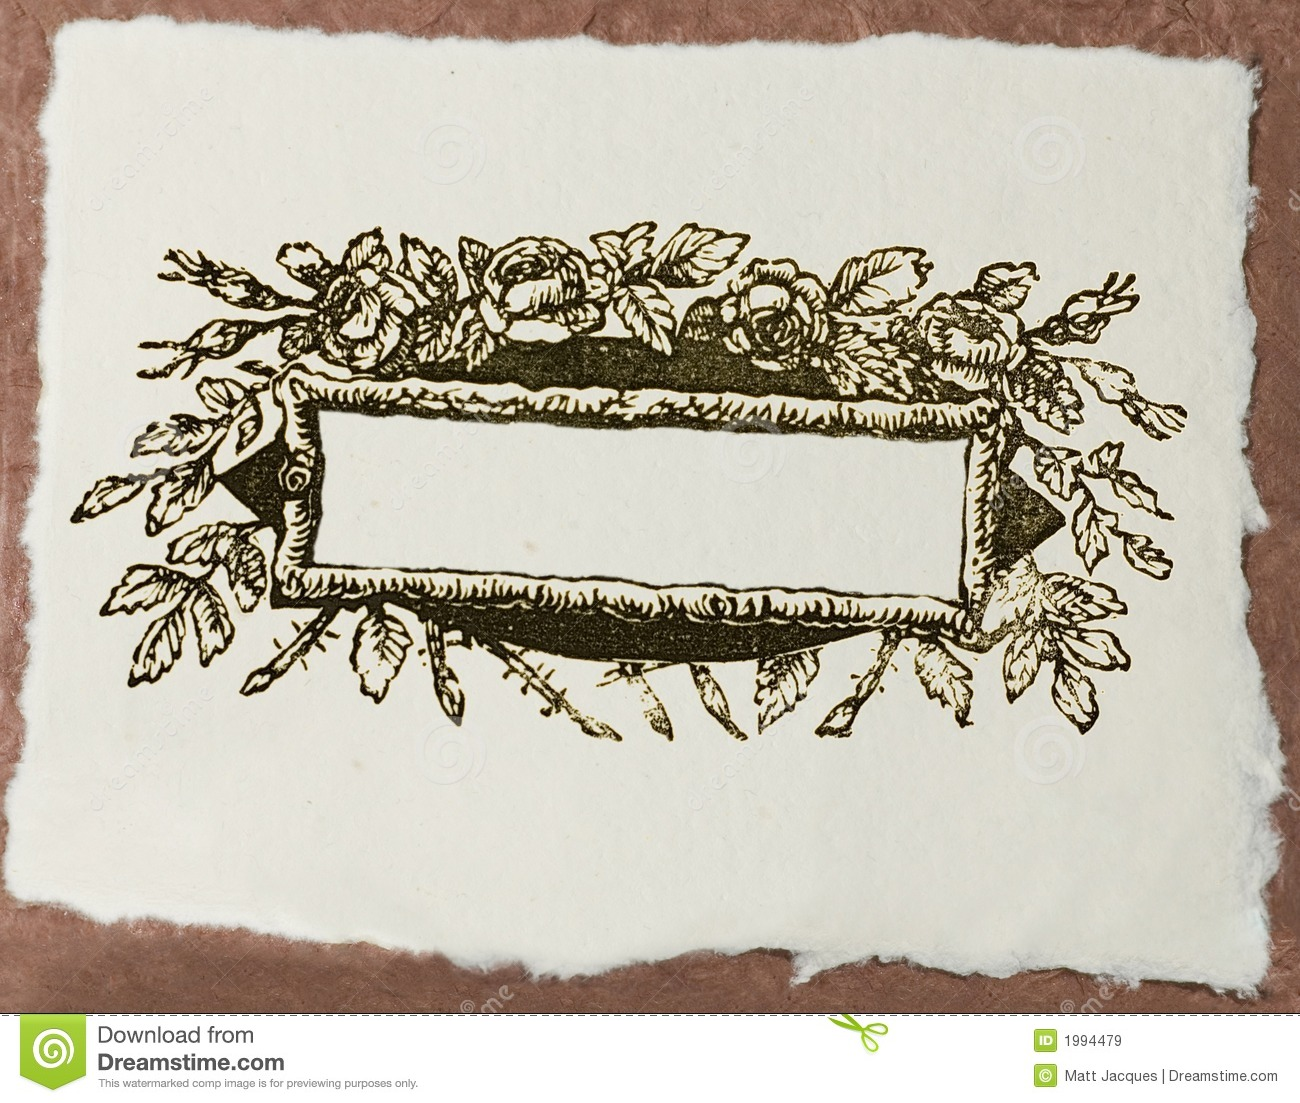 Craft Paper With Blank Floral Design Title Stock Image - Image: 1994479